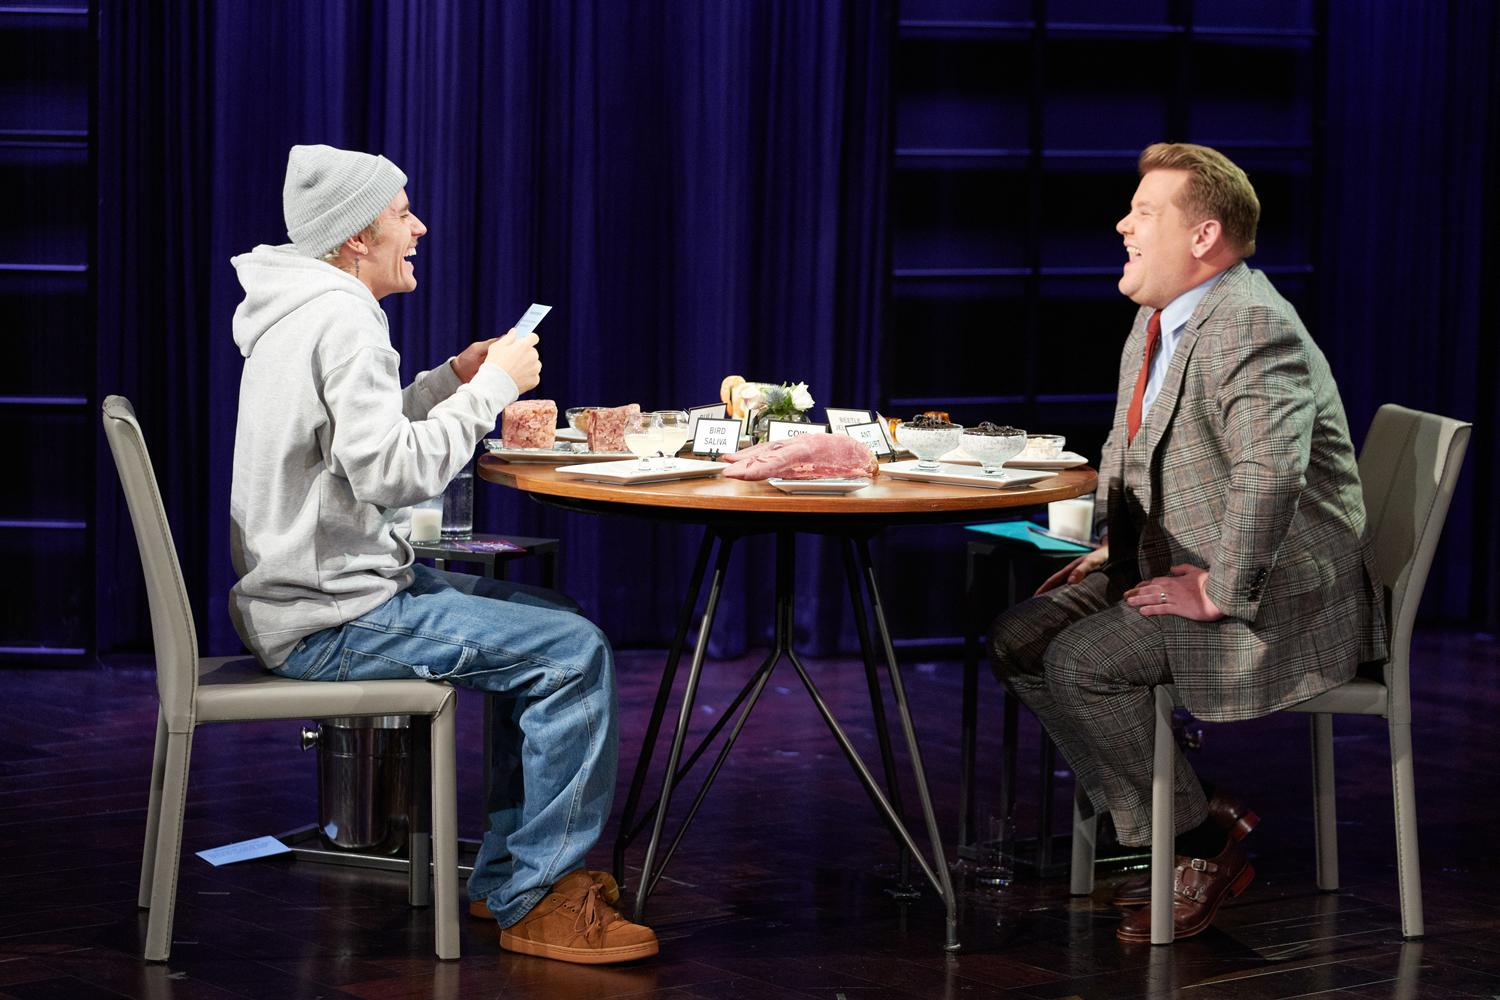 Justin Bieber Asks James Corden If He Regretted Doing Cats